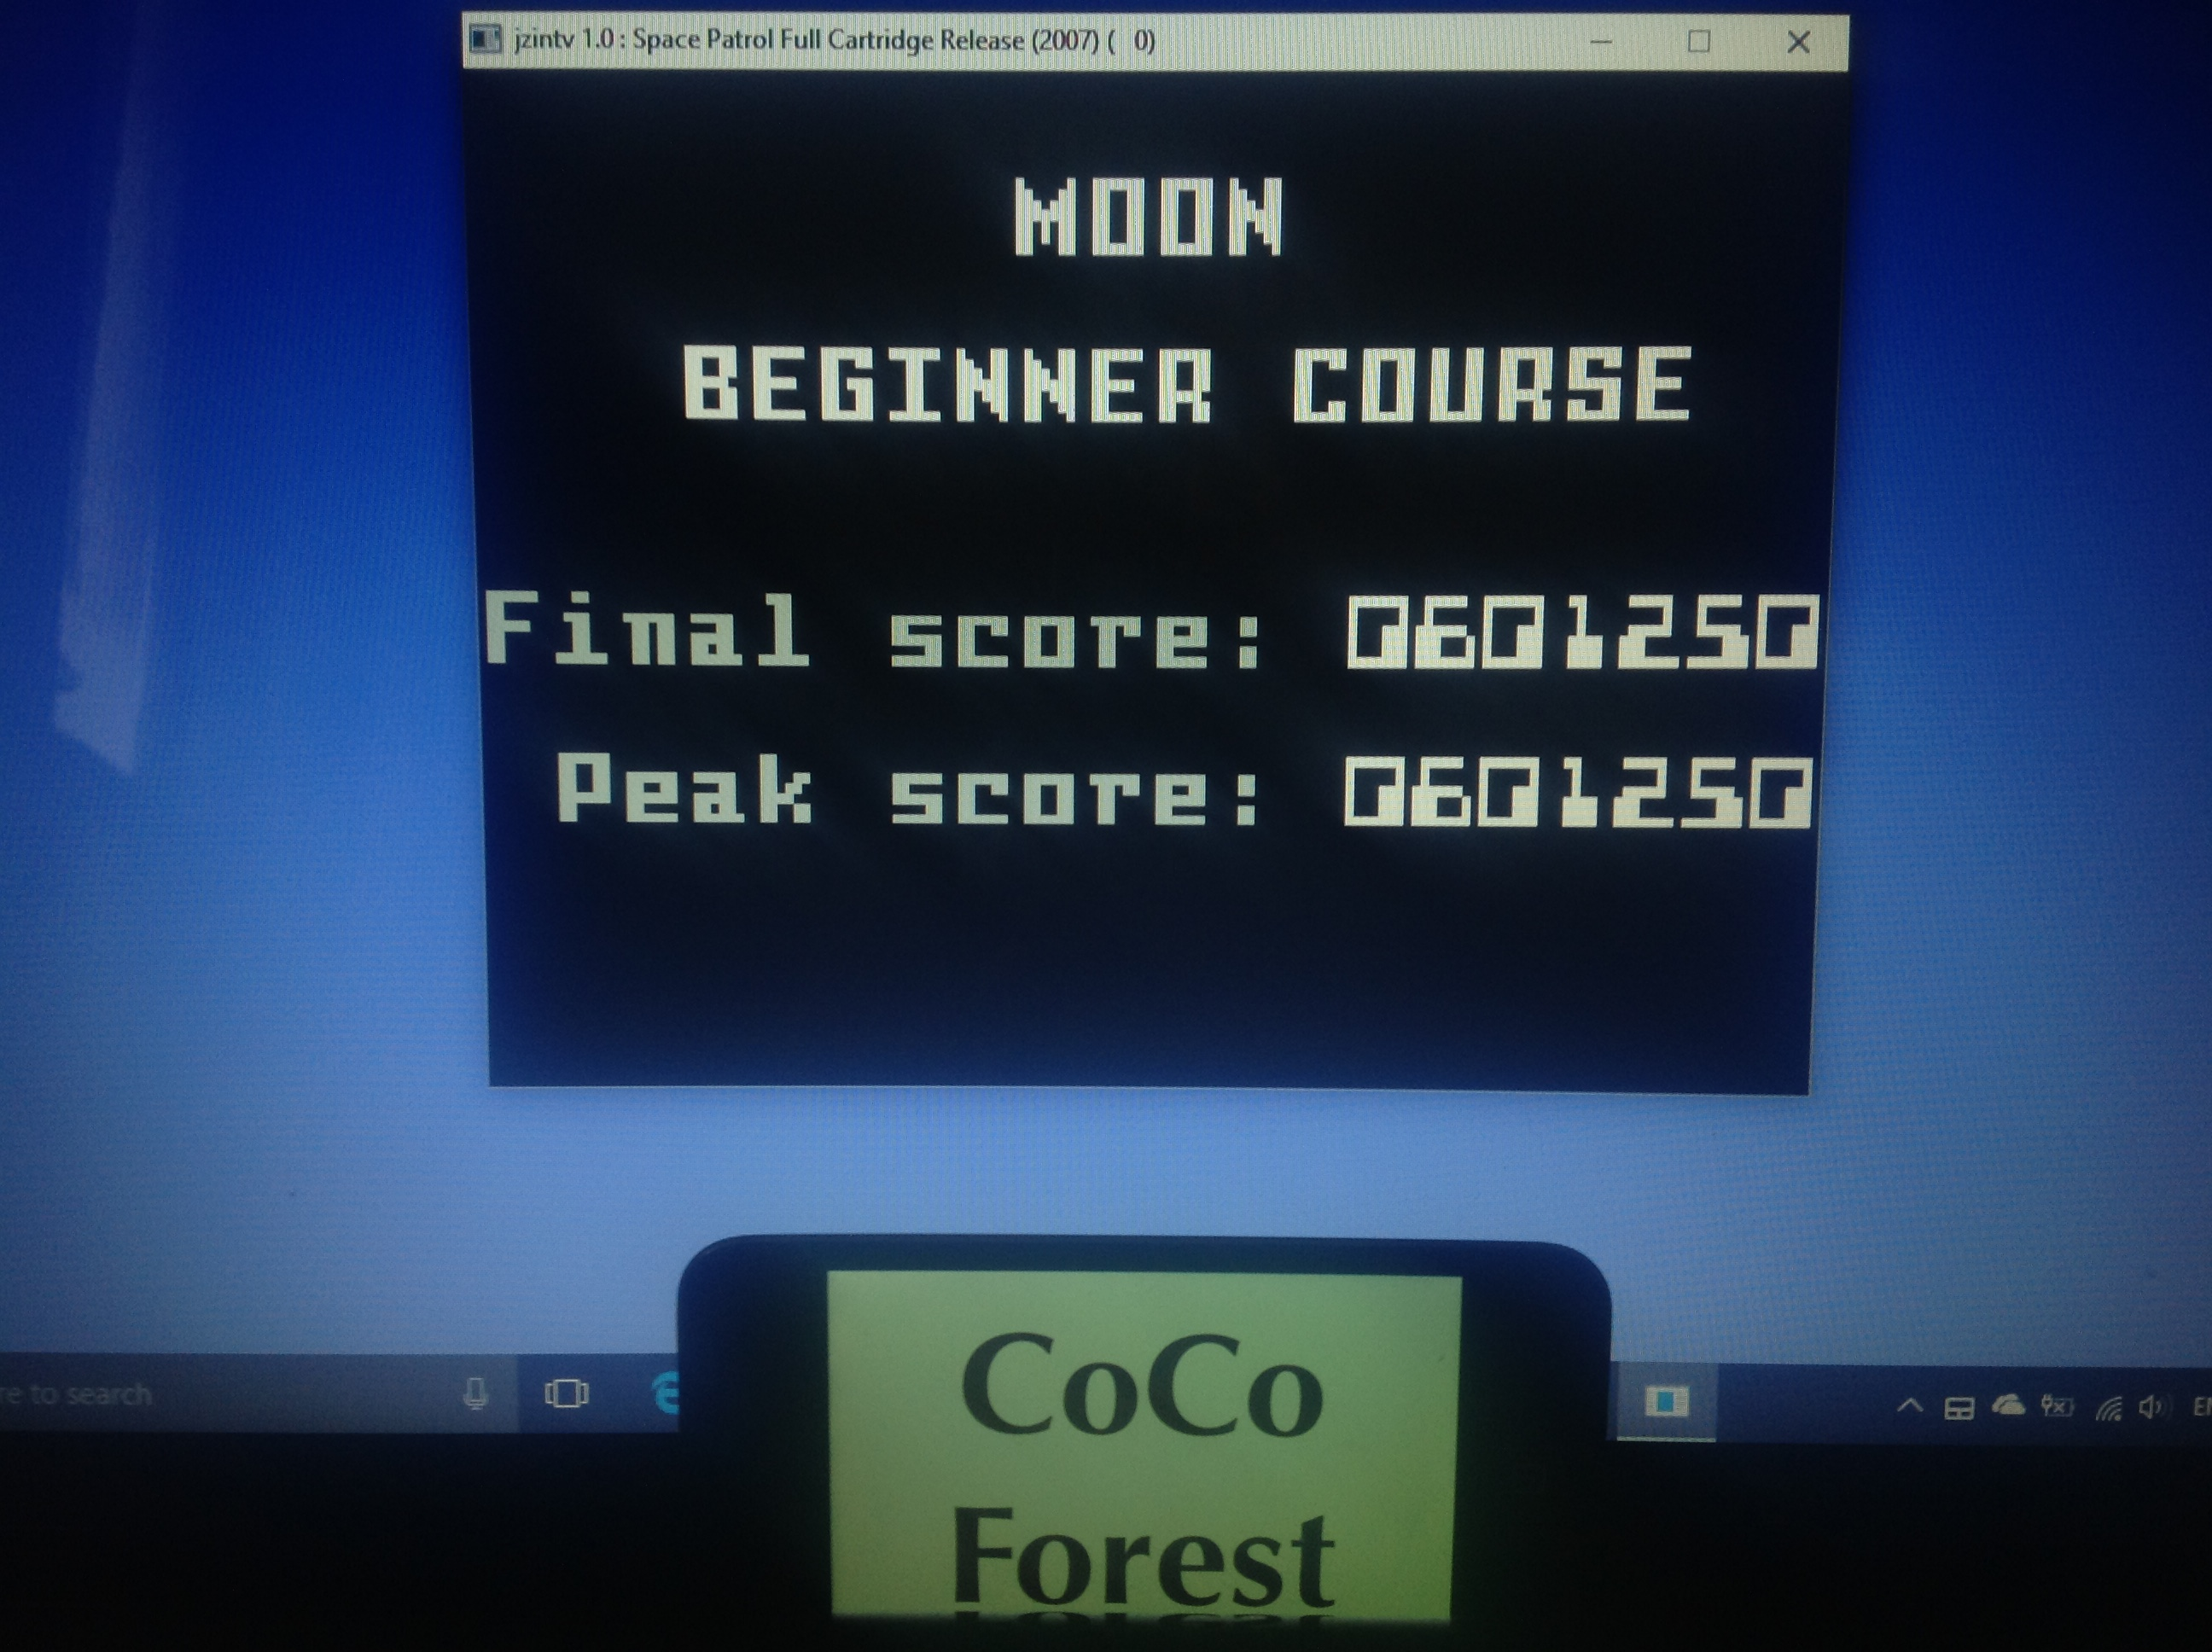 CoCoForest: Space Patrol: Moon Beginner (Intellivision Emulated) 601,250 points on 2018-01-27 05:47:48